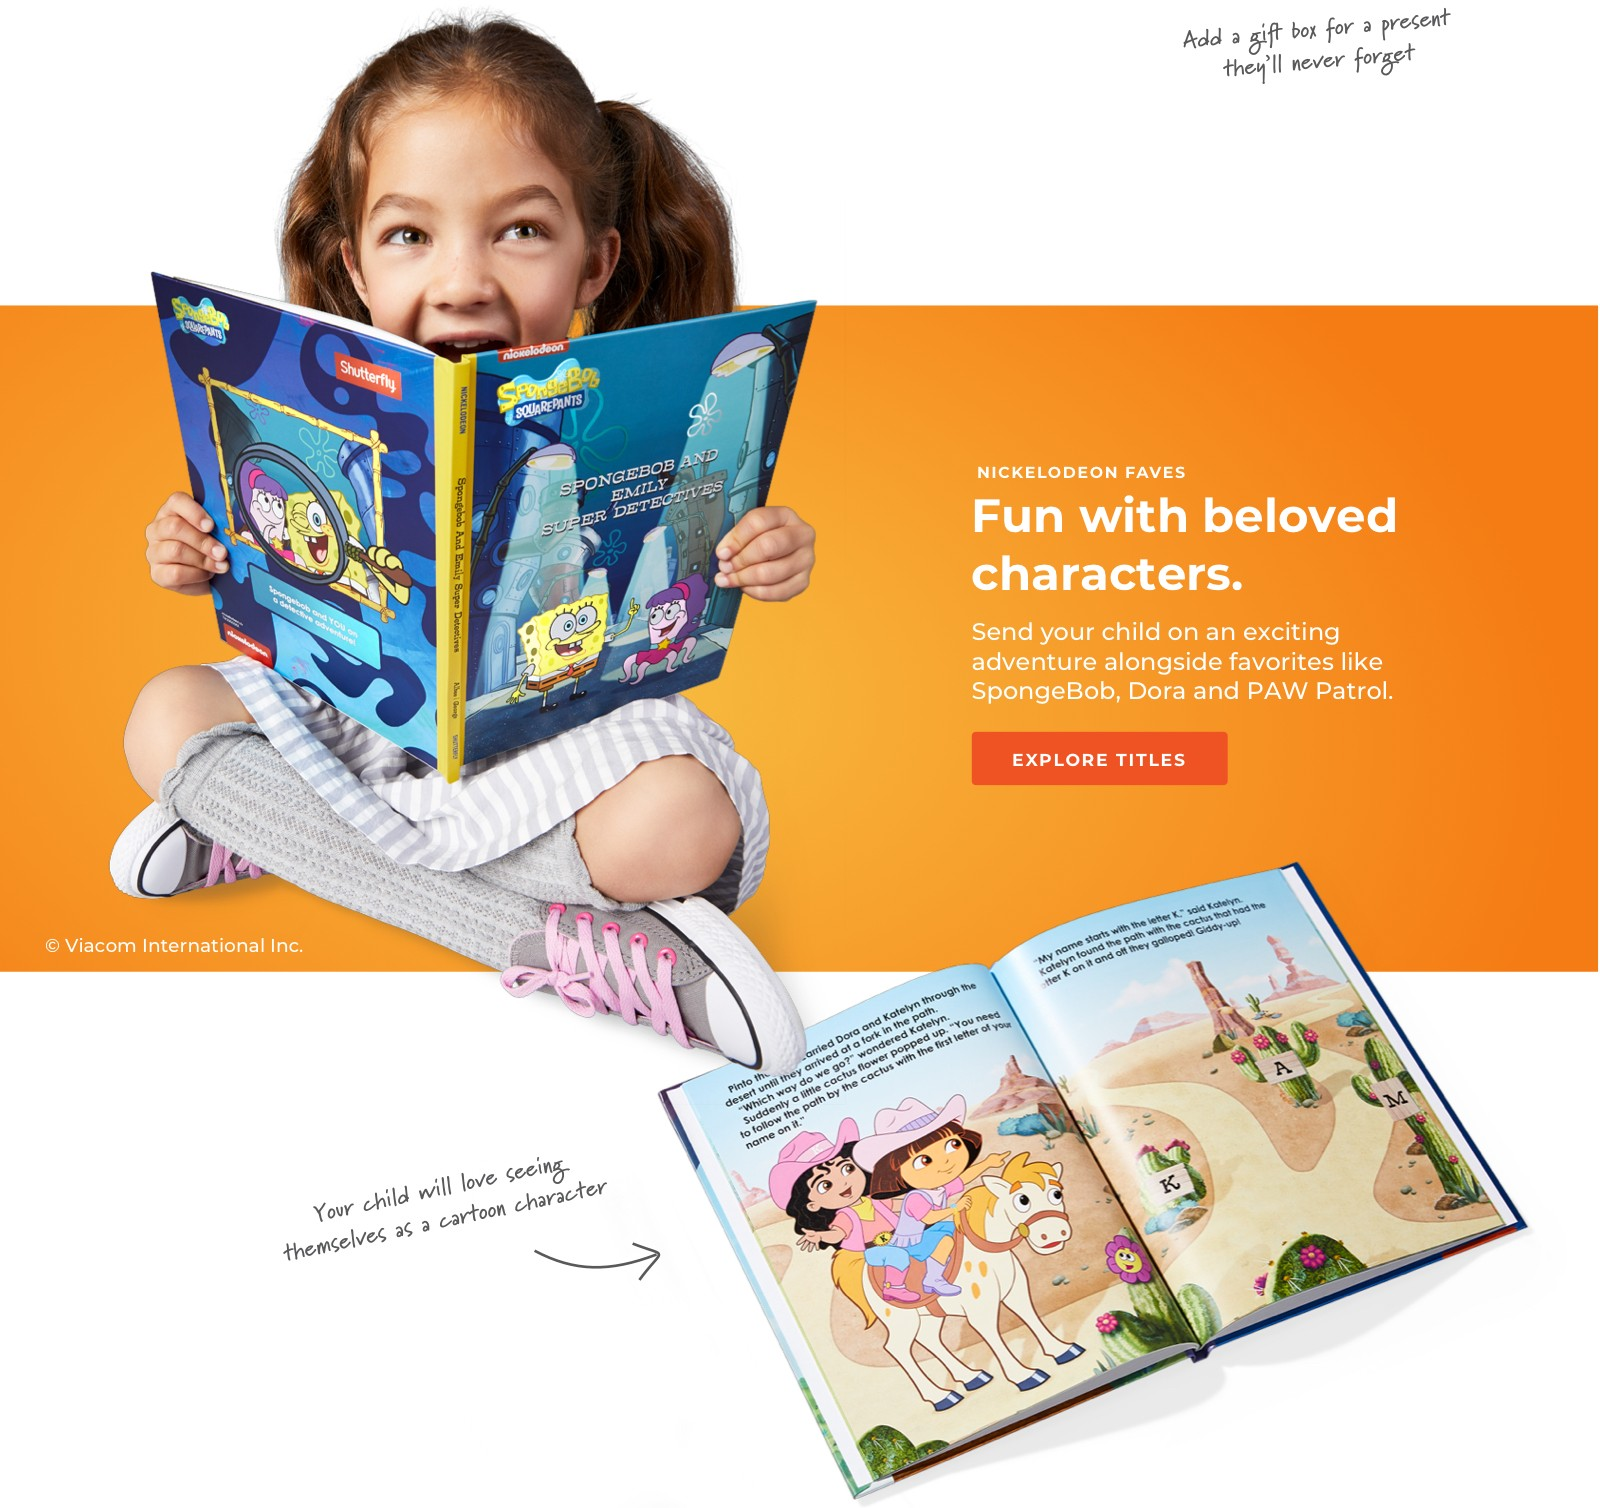 Personalized Story Books for Children | Shutterfly